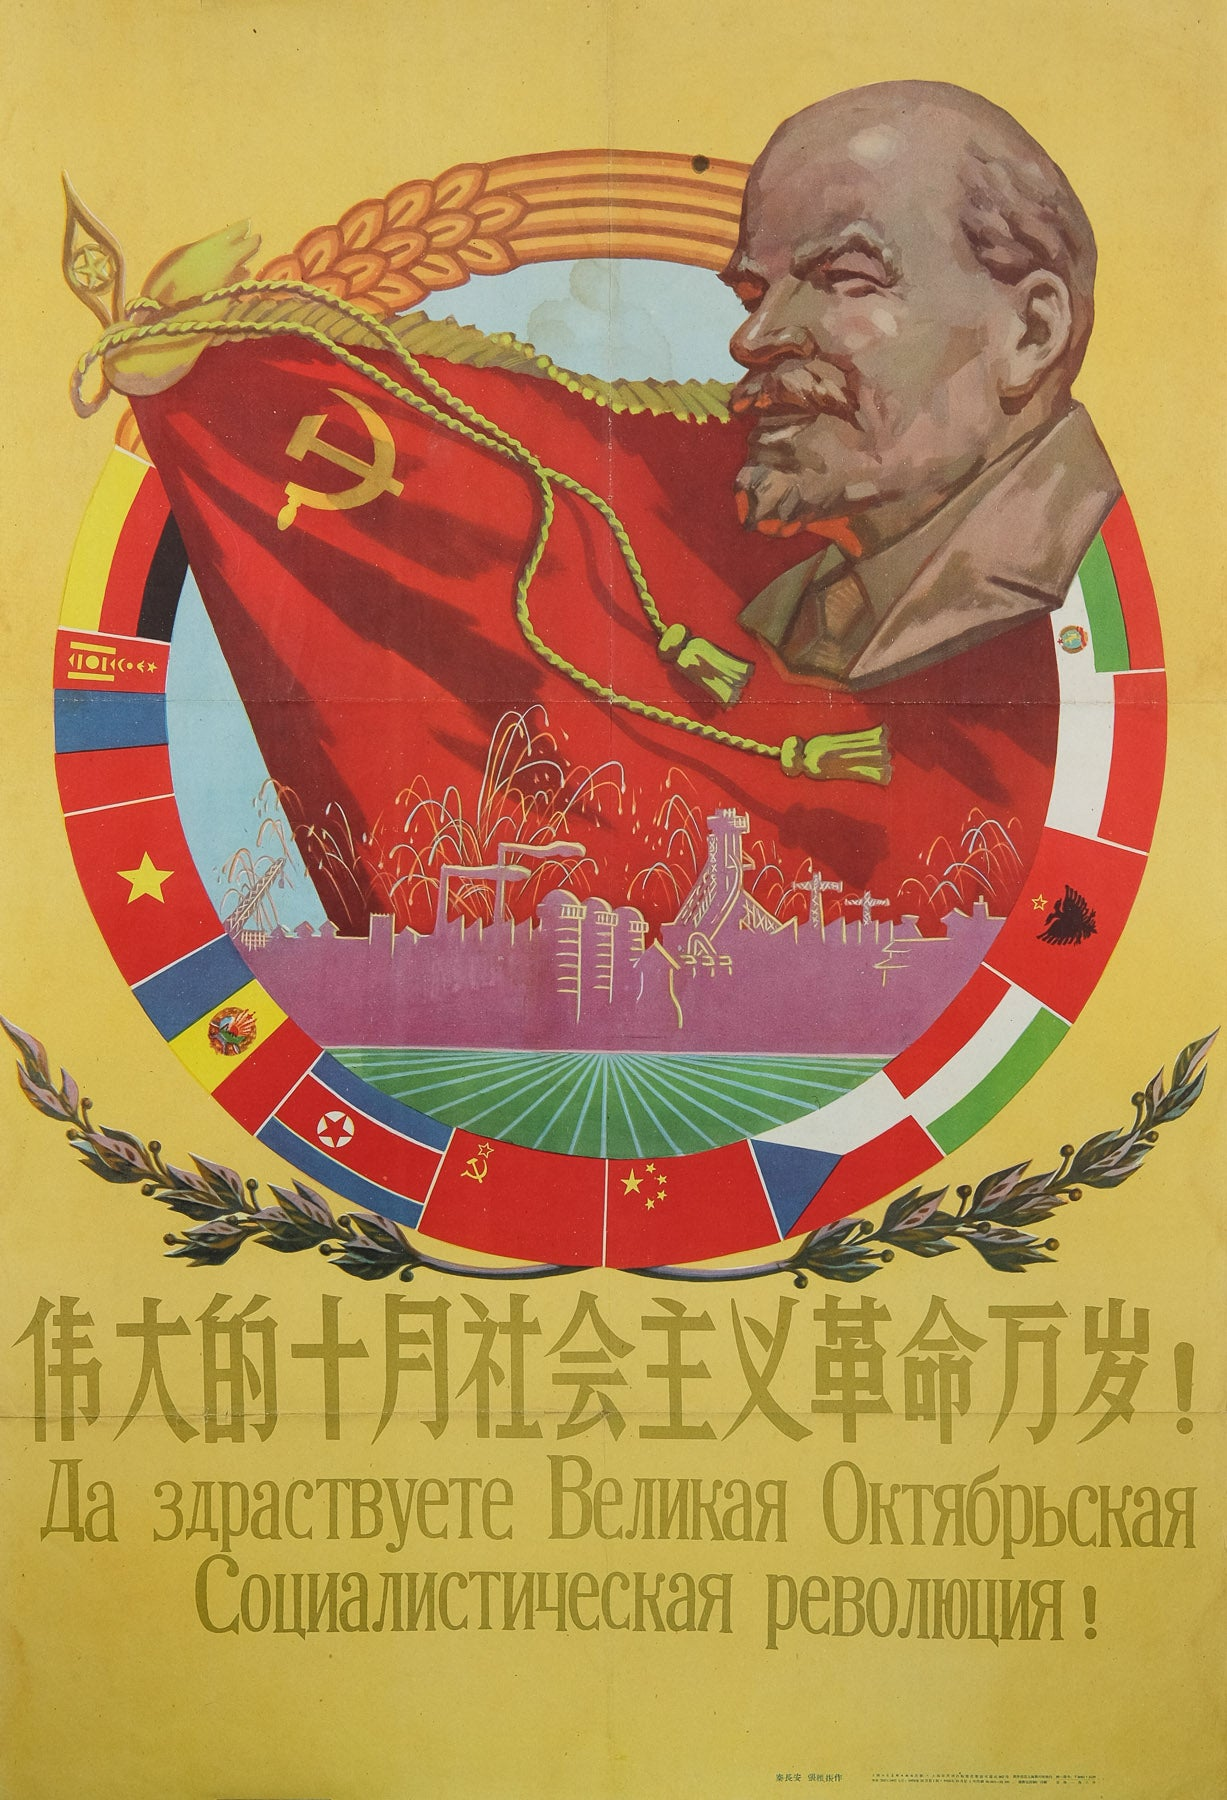 Authentic 1958 Chinese propaganda poster Long live the Great October Socialist Revolution! by Qin Chang'an and Zhang Weizhen